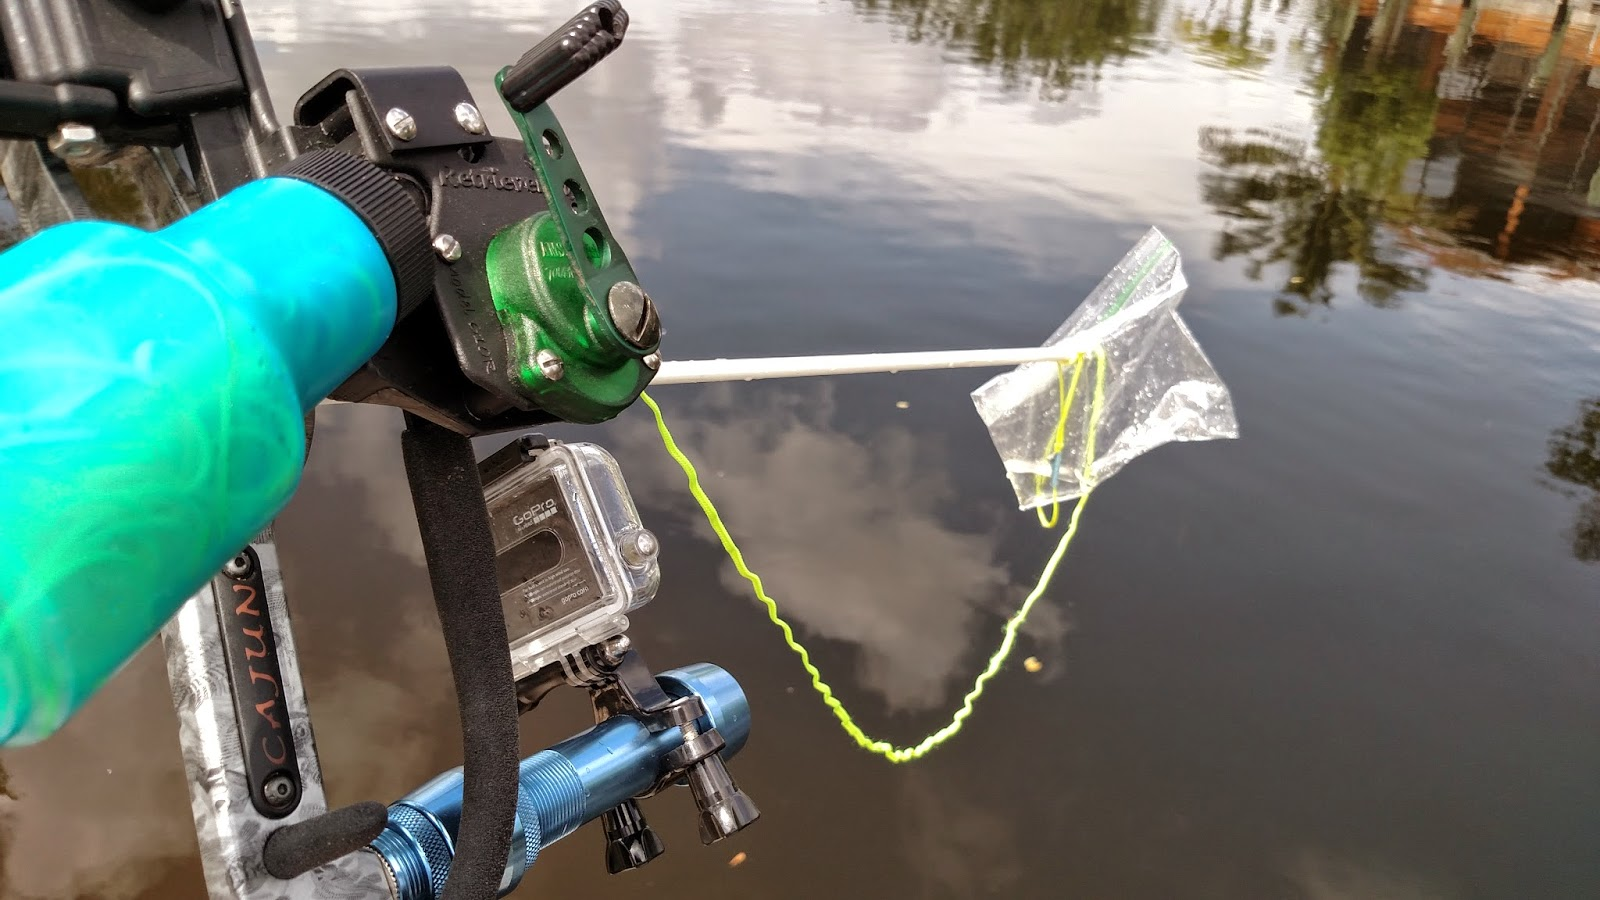 Shooting floating litter in a Cape Coral Canal with a Bowfishing bow.